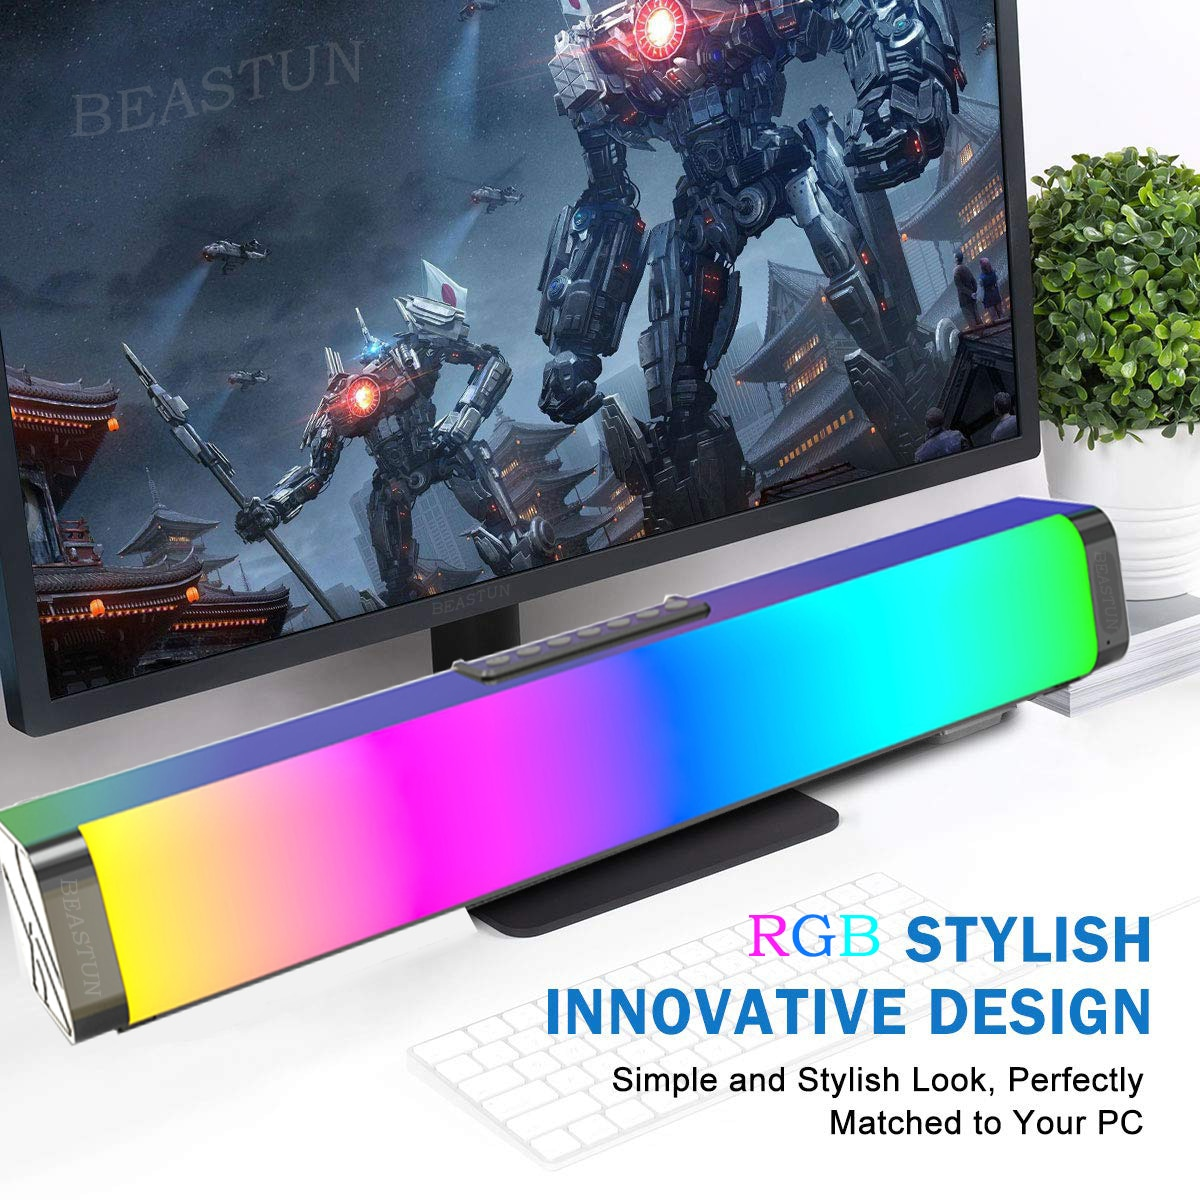 BEASTUN Computer Game Speakers with RGB Light Powerful Bass 3D Stereo Sound Bar USB AUX Optical Soundbar 20W Speaker for PC TV enlarge